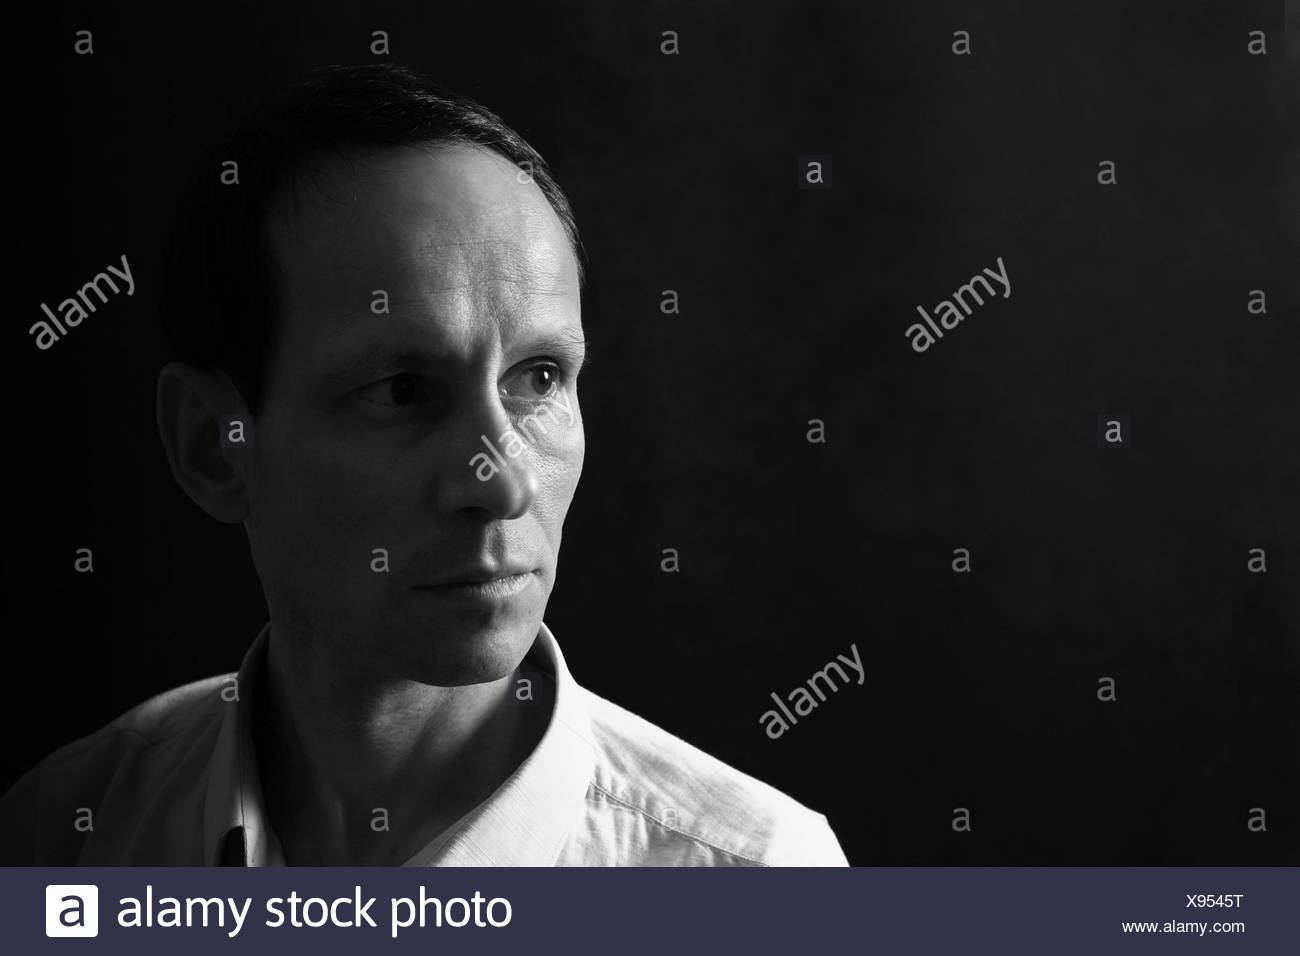 Portrait of the man - Stock Image